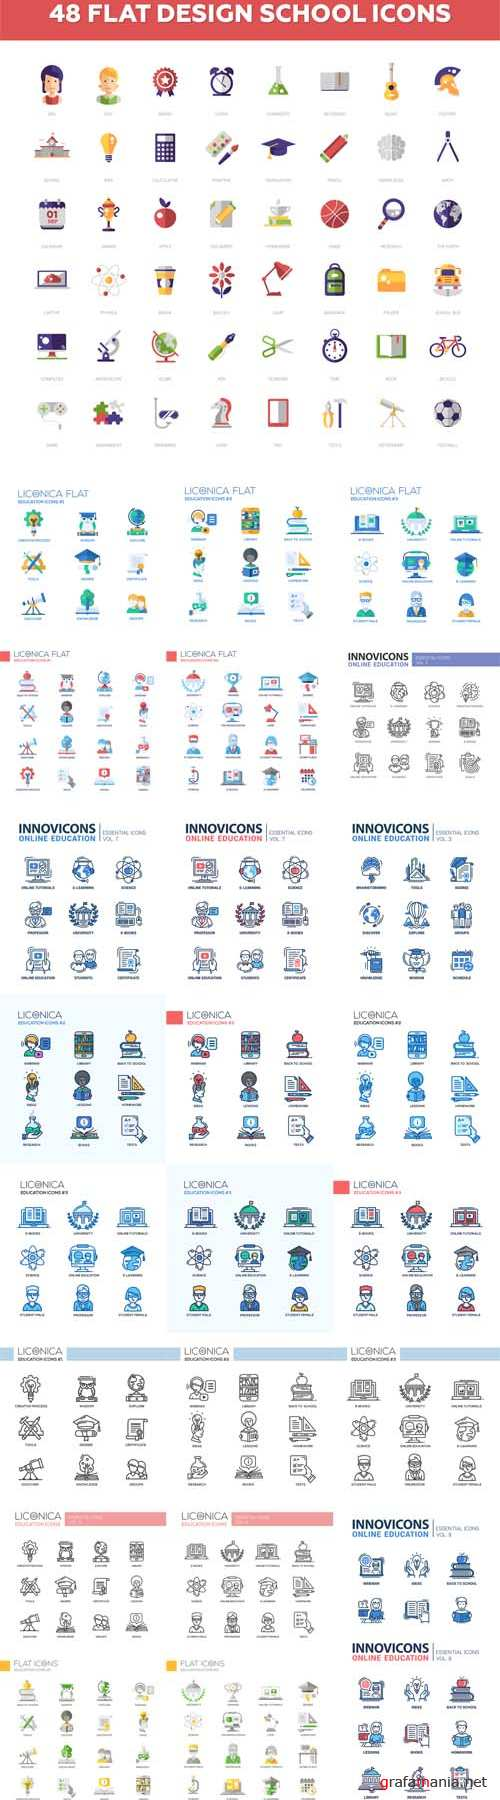 Vector Modern School and Education Design Icons